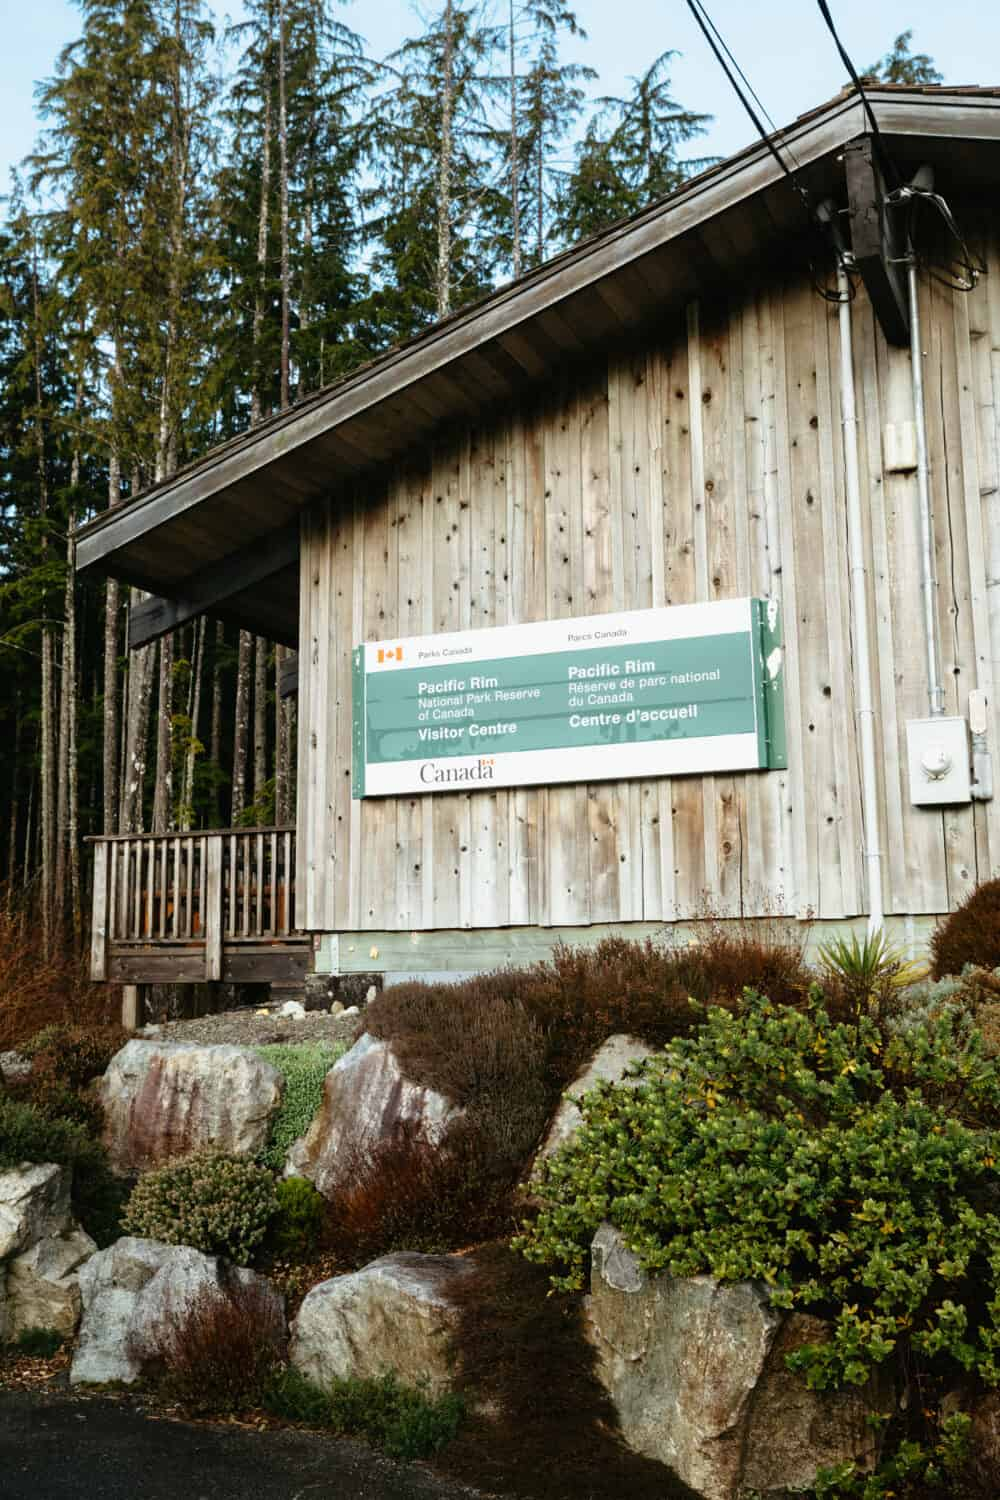 Pacific Rim National Park Information Center Building - TheMandagies.com